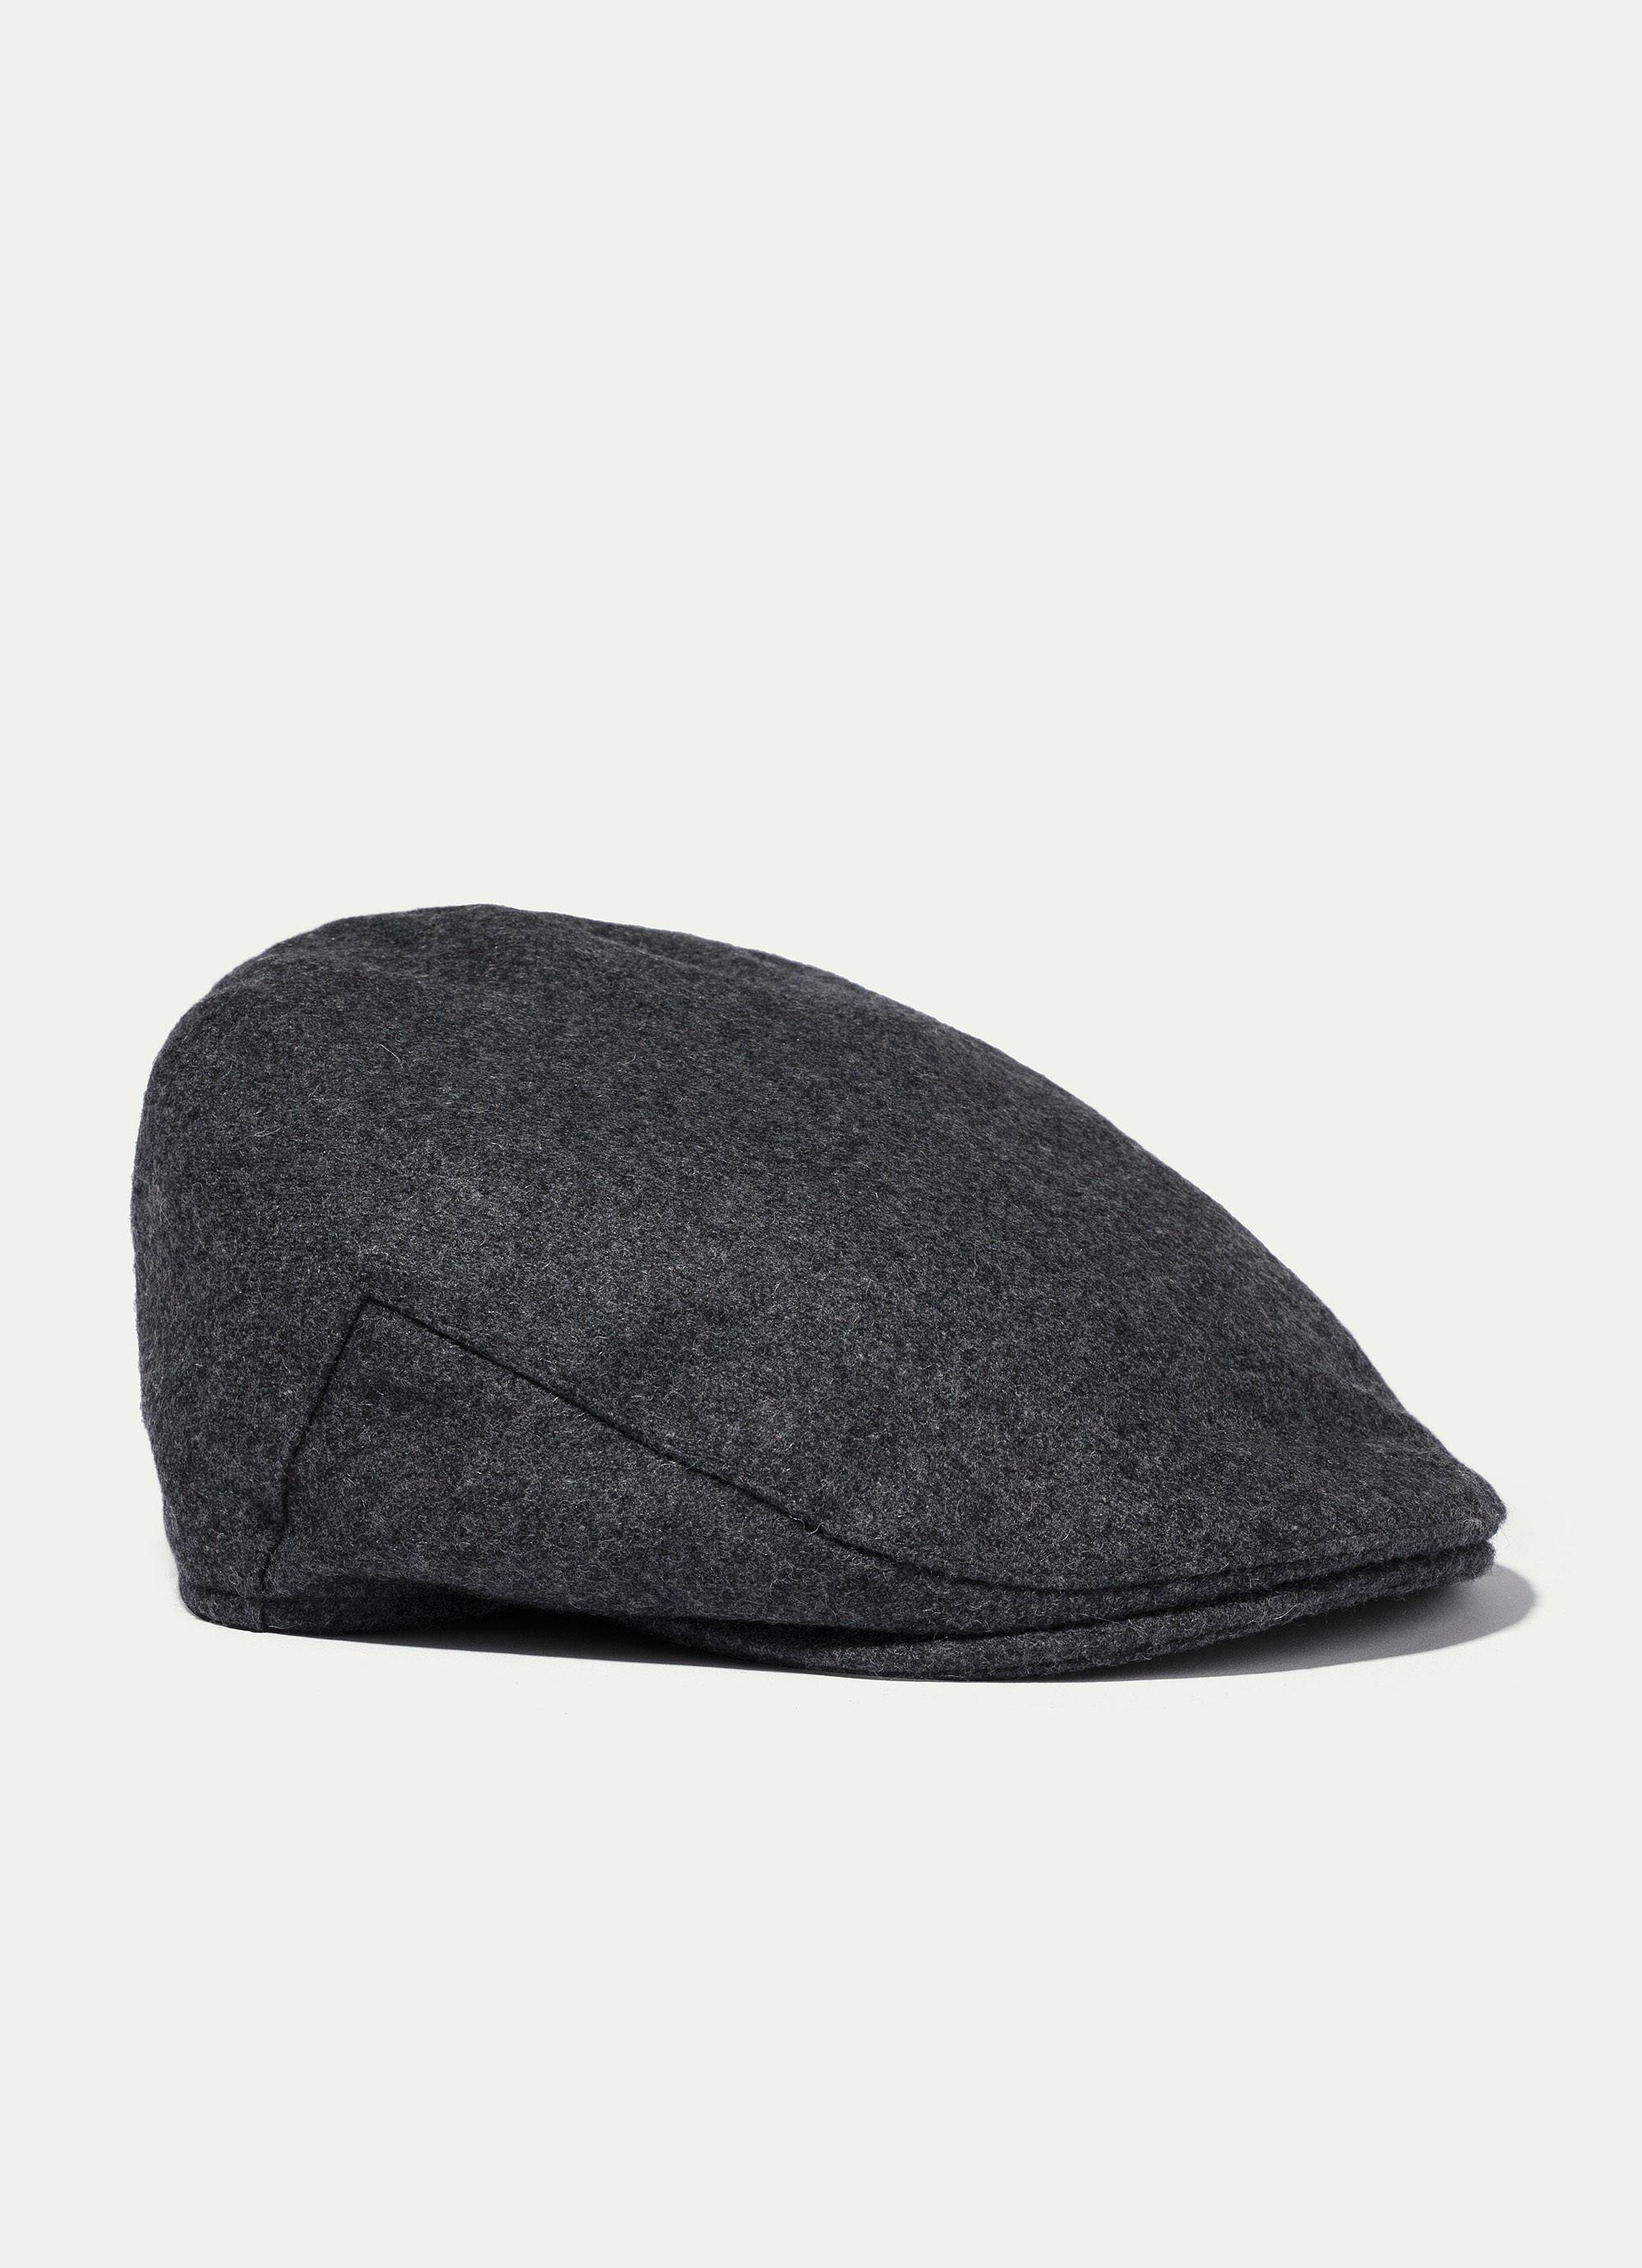 ee1705ae877 Hackett Balmoral Flatcap for Men - Lyst